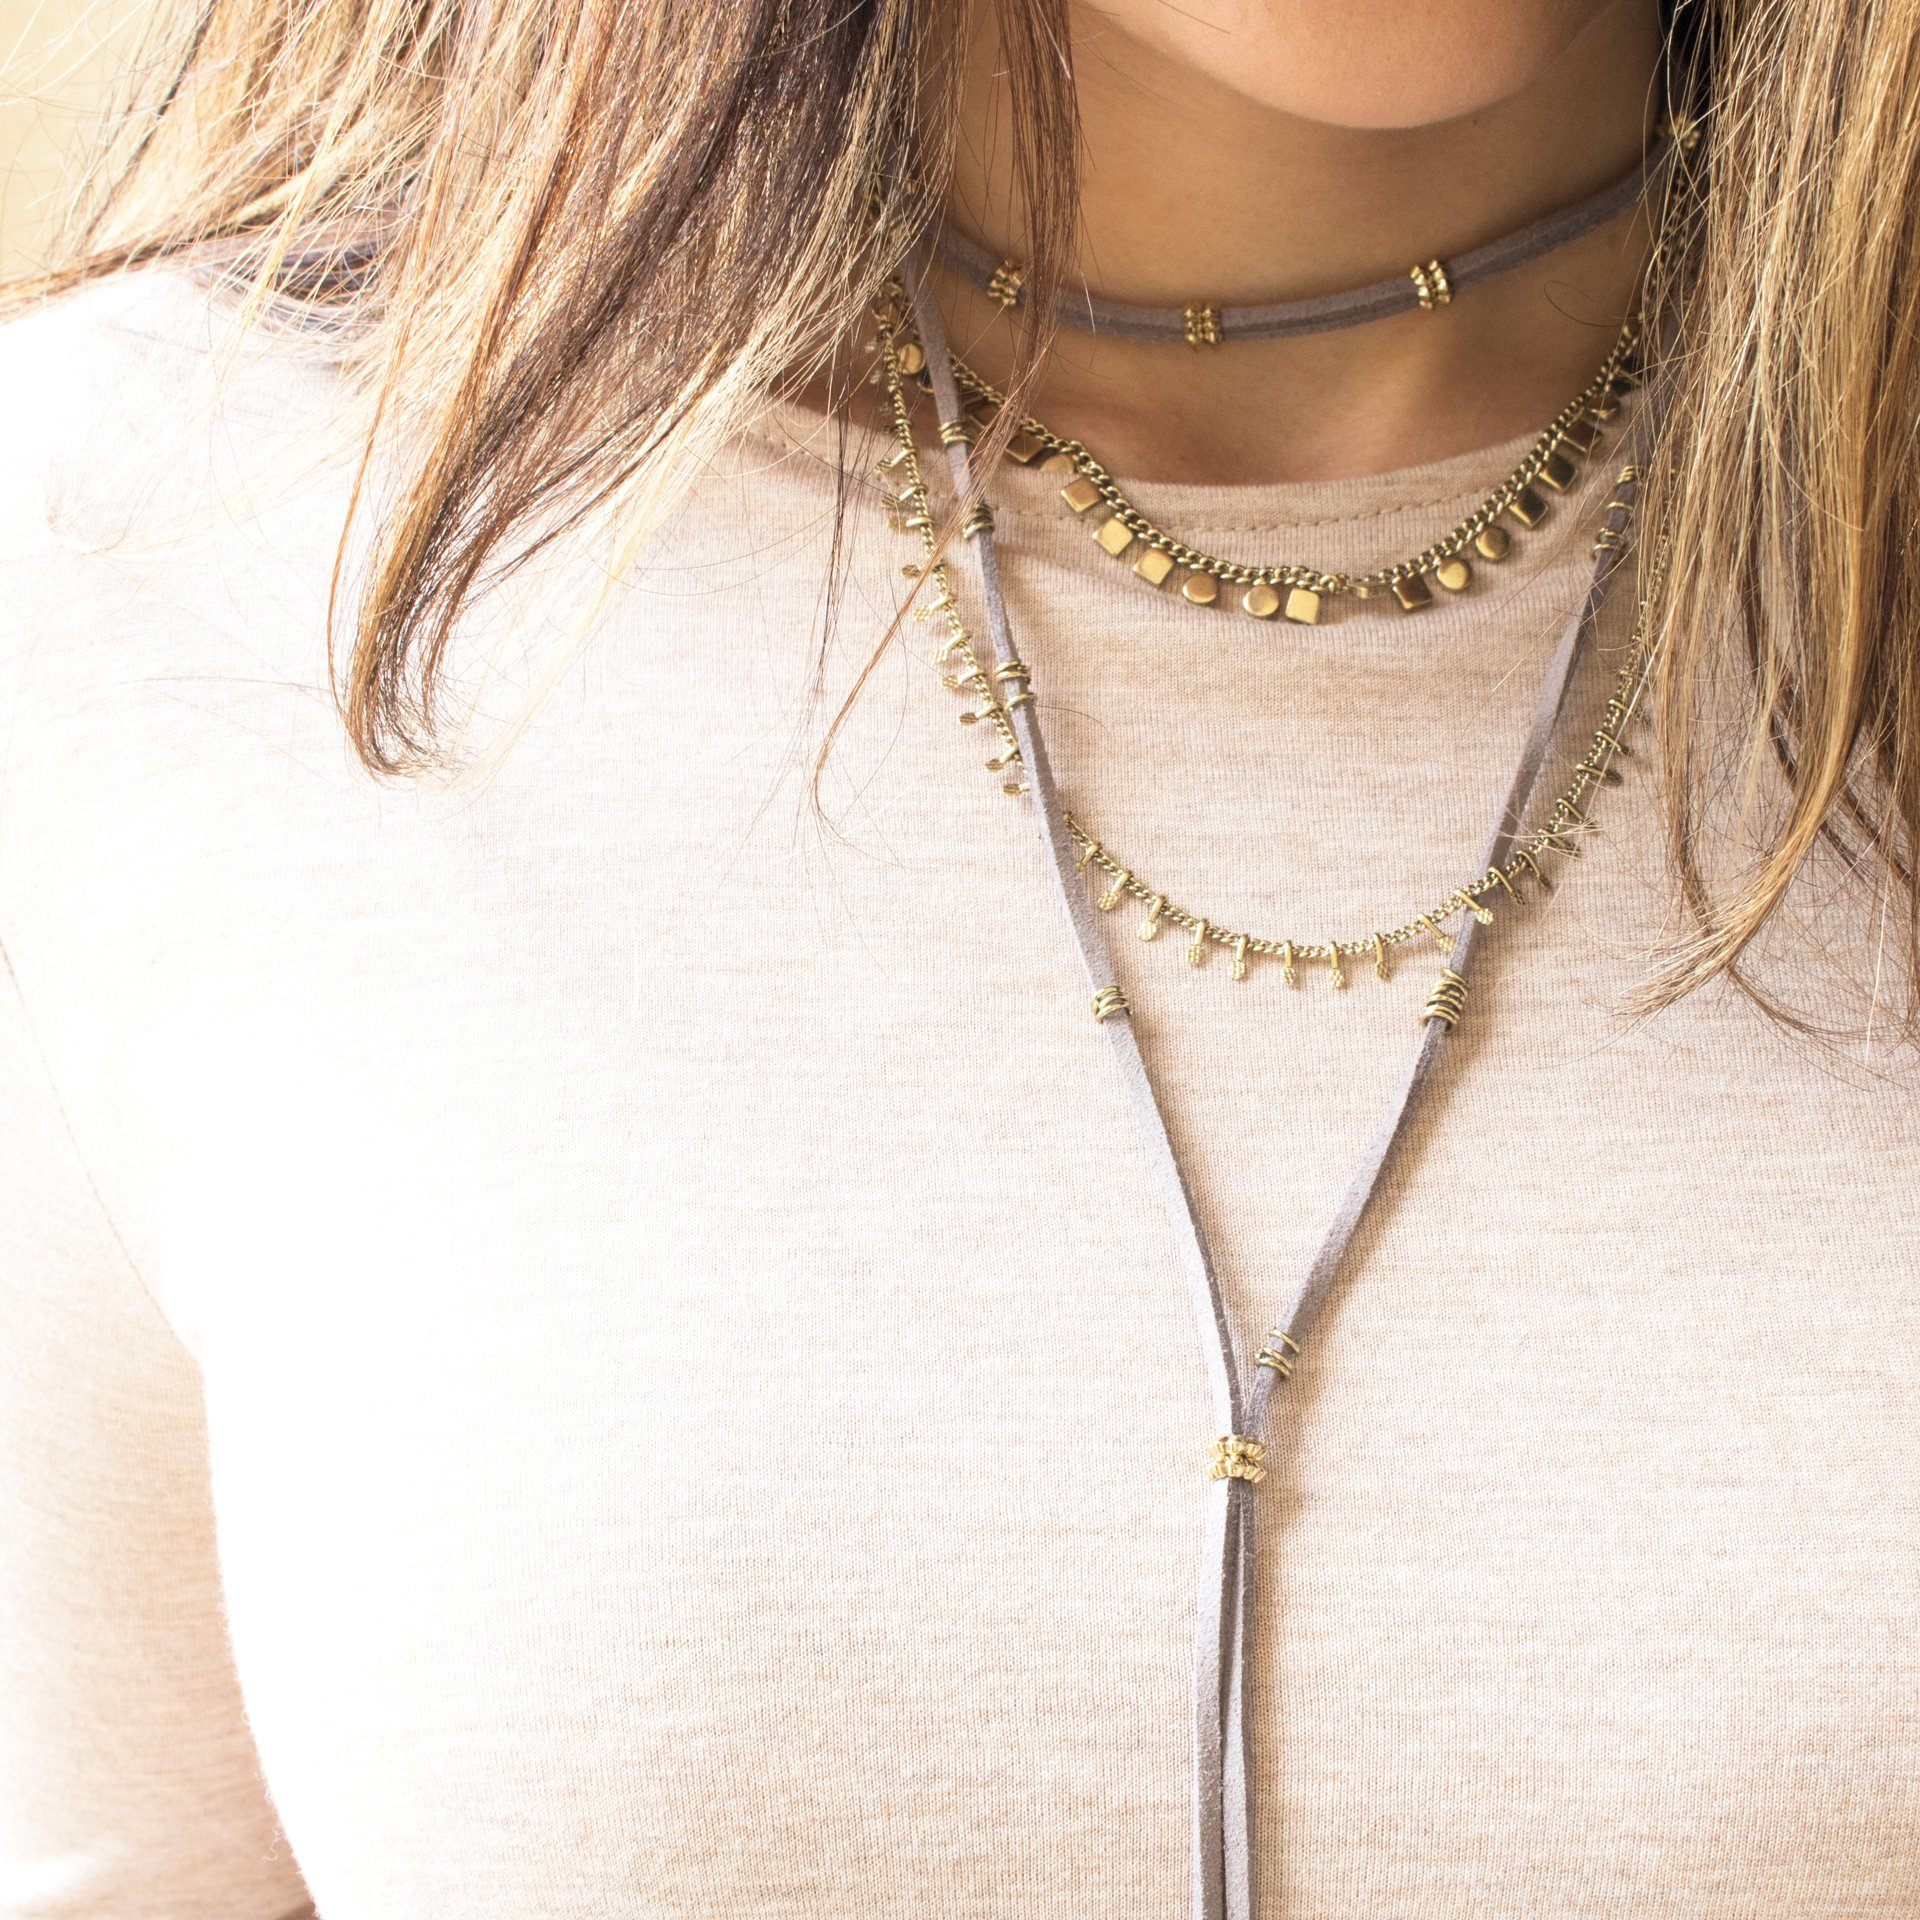 'Lo' Layered Statement Necklace - Arlo and Arrows